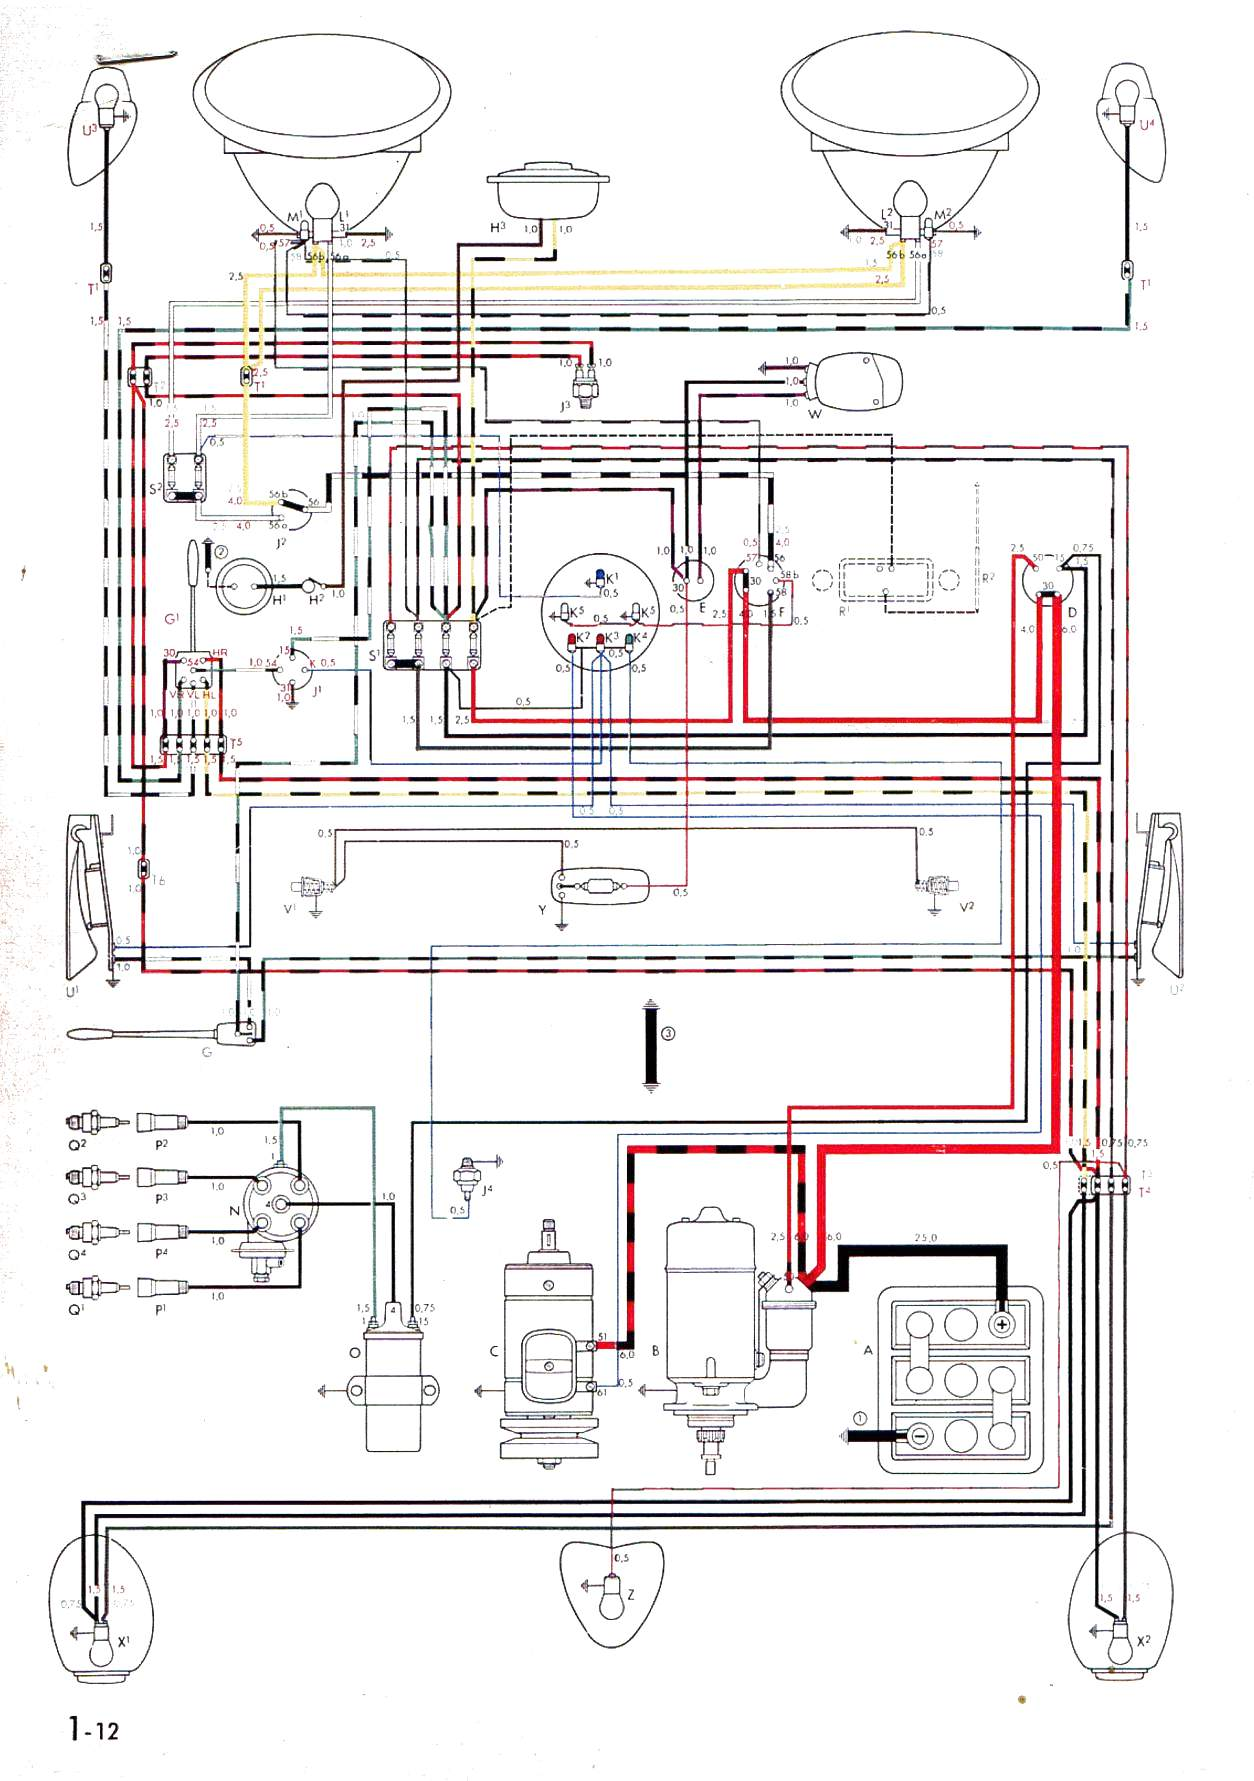 bug 55 57 vw wiring diagrams 1965 vw bus wiring harness at mifinder.co